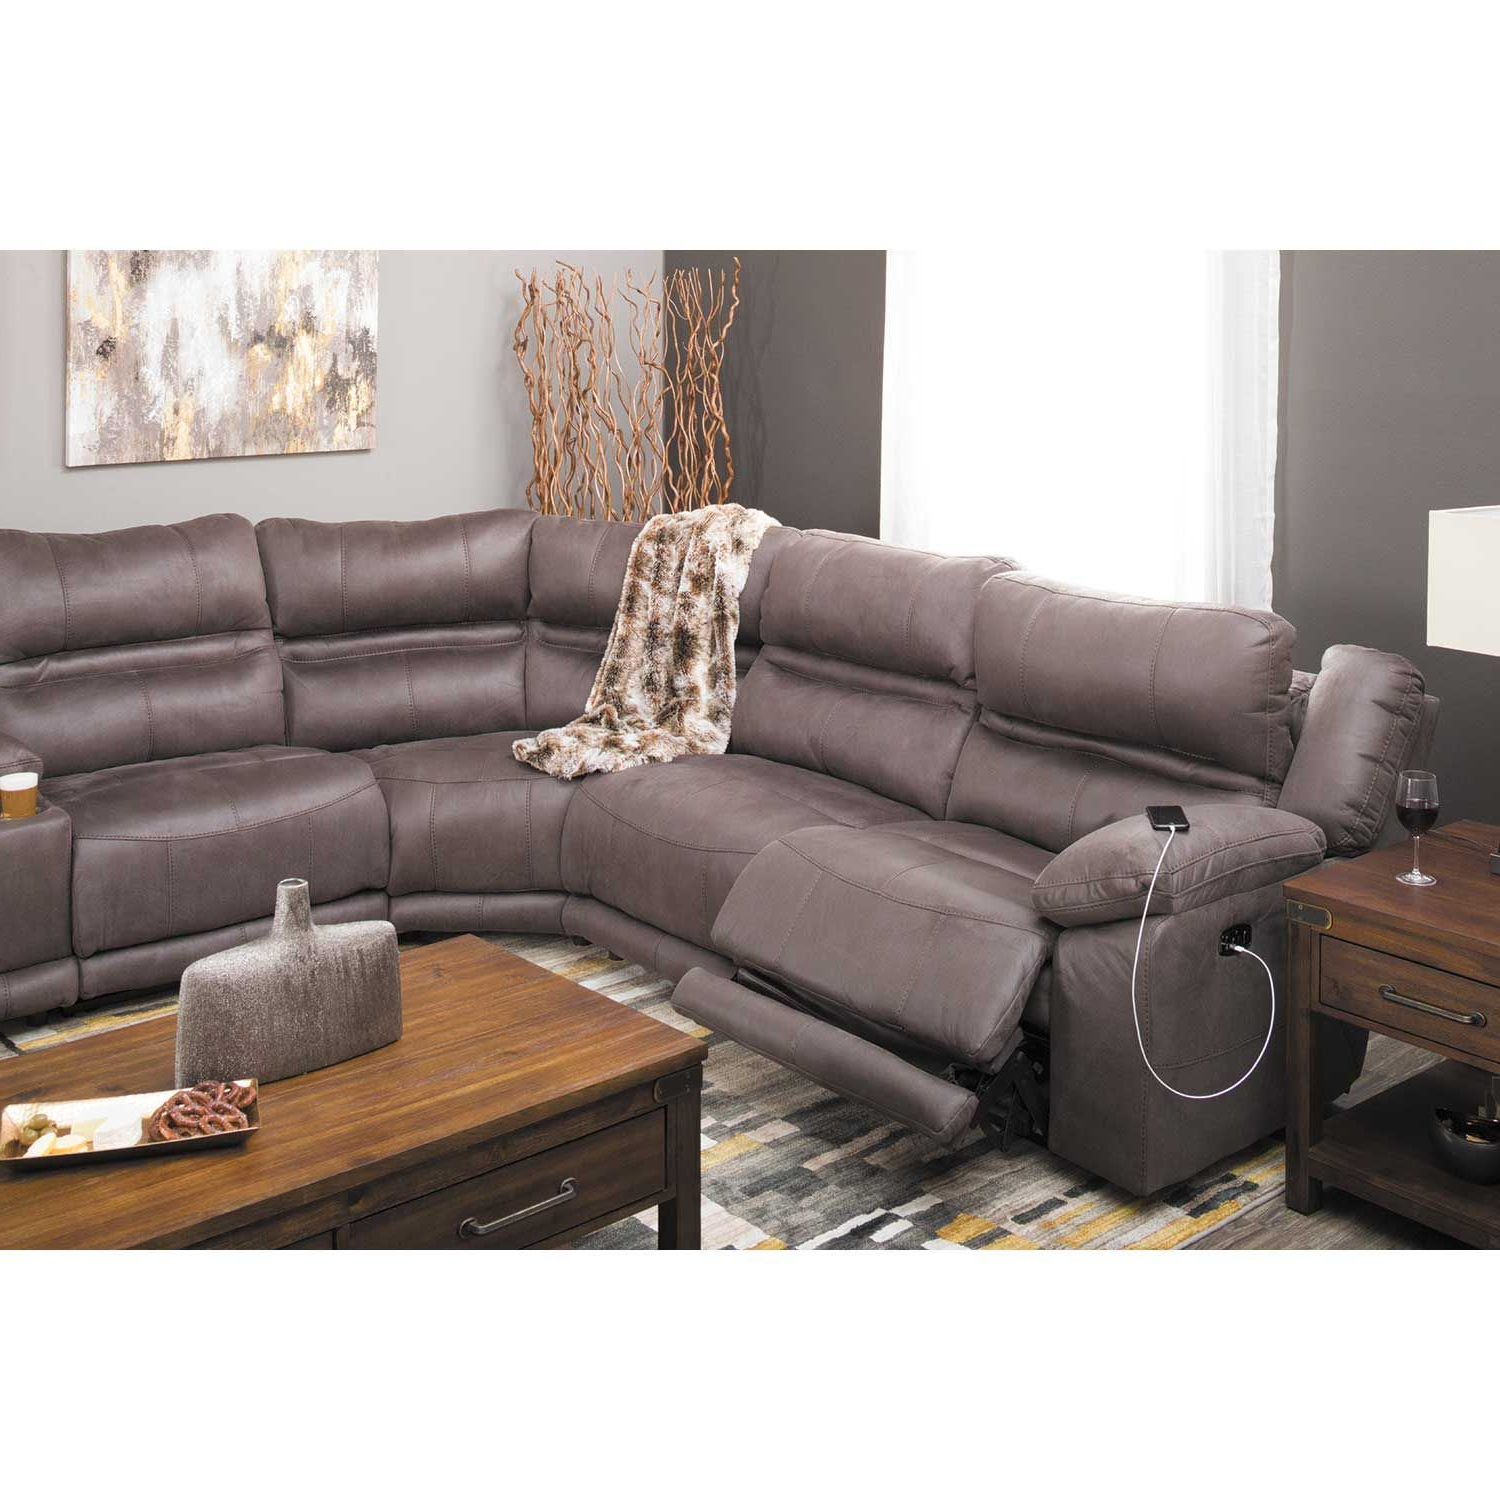 Famous Braxton 6 Piece Power Reclining Sectional With Adjustable Headrest Throughout Jackson 6 Piece Power Reclining Sectionals With  Sleeper (Gallery 17 of 20)